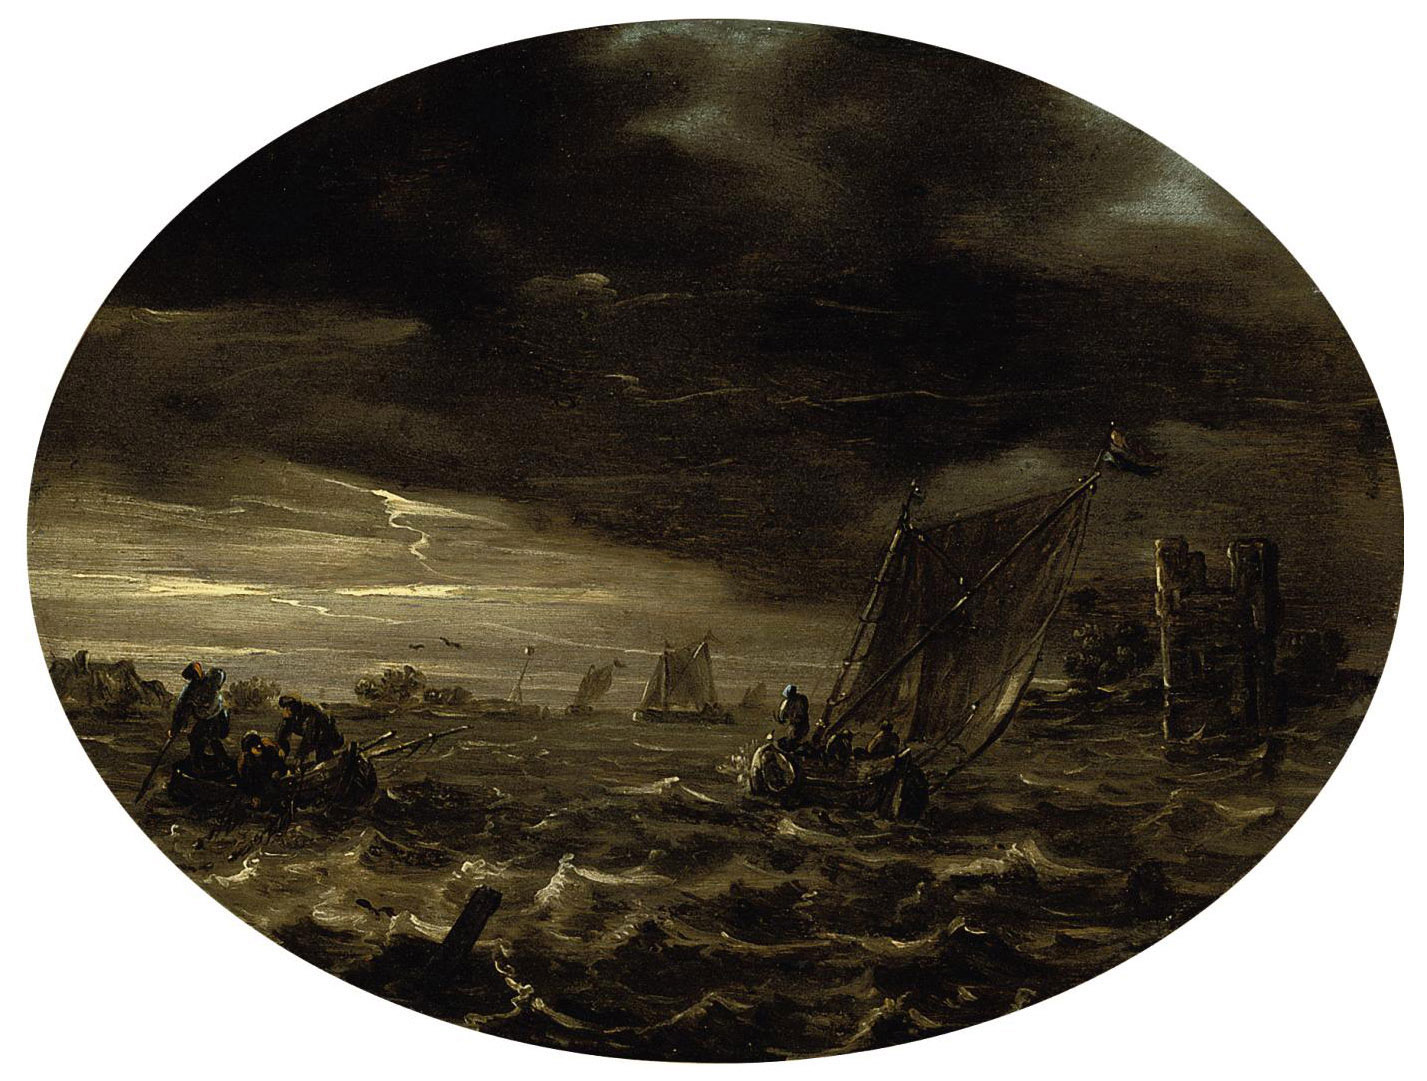 A moonlit river landscape with fishermen in choppy waters